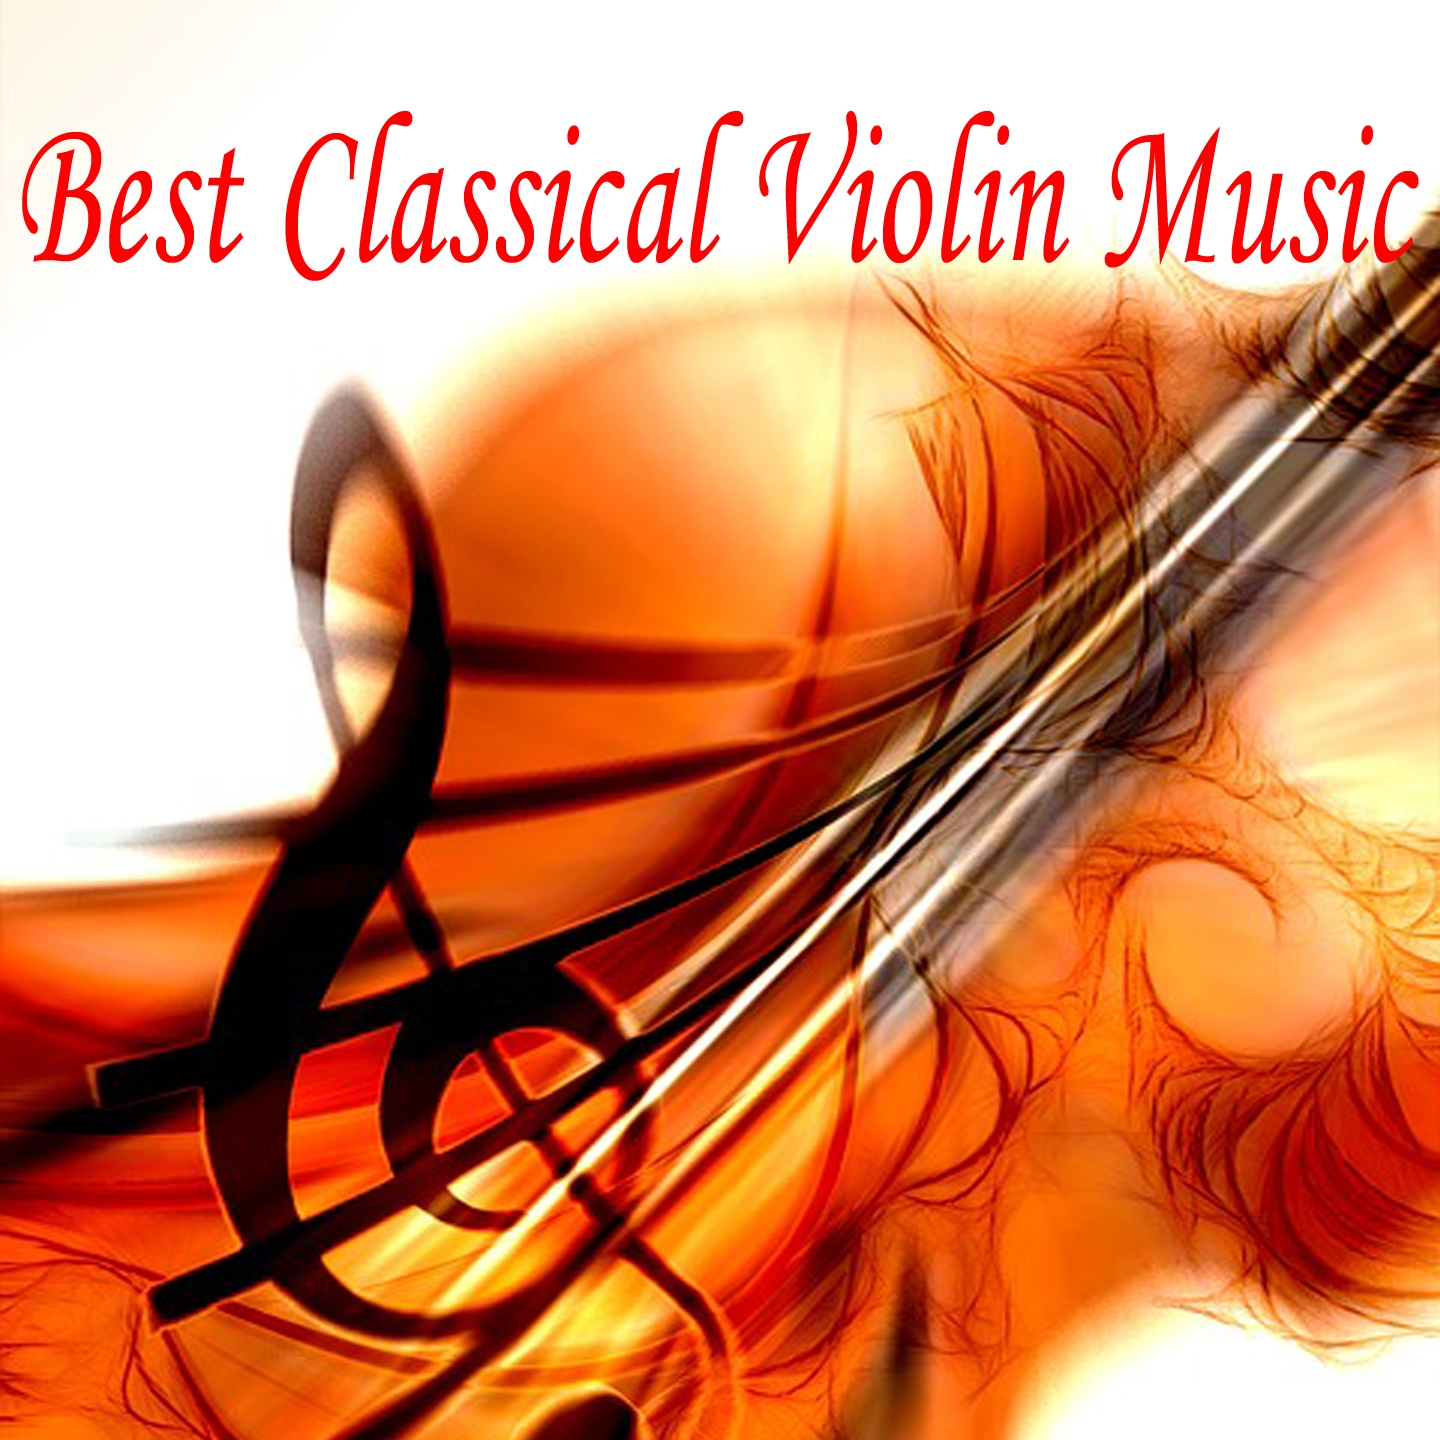 Best Classical Violin Music